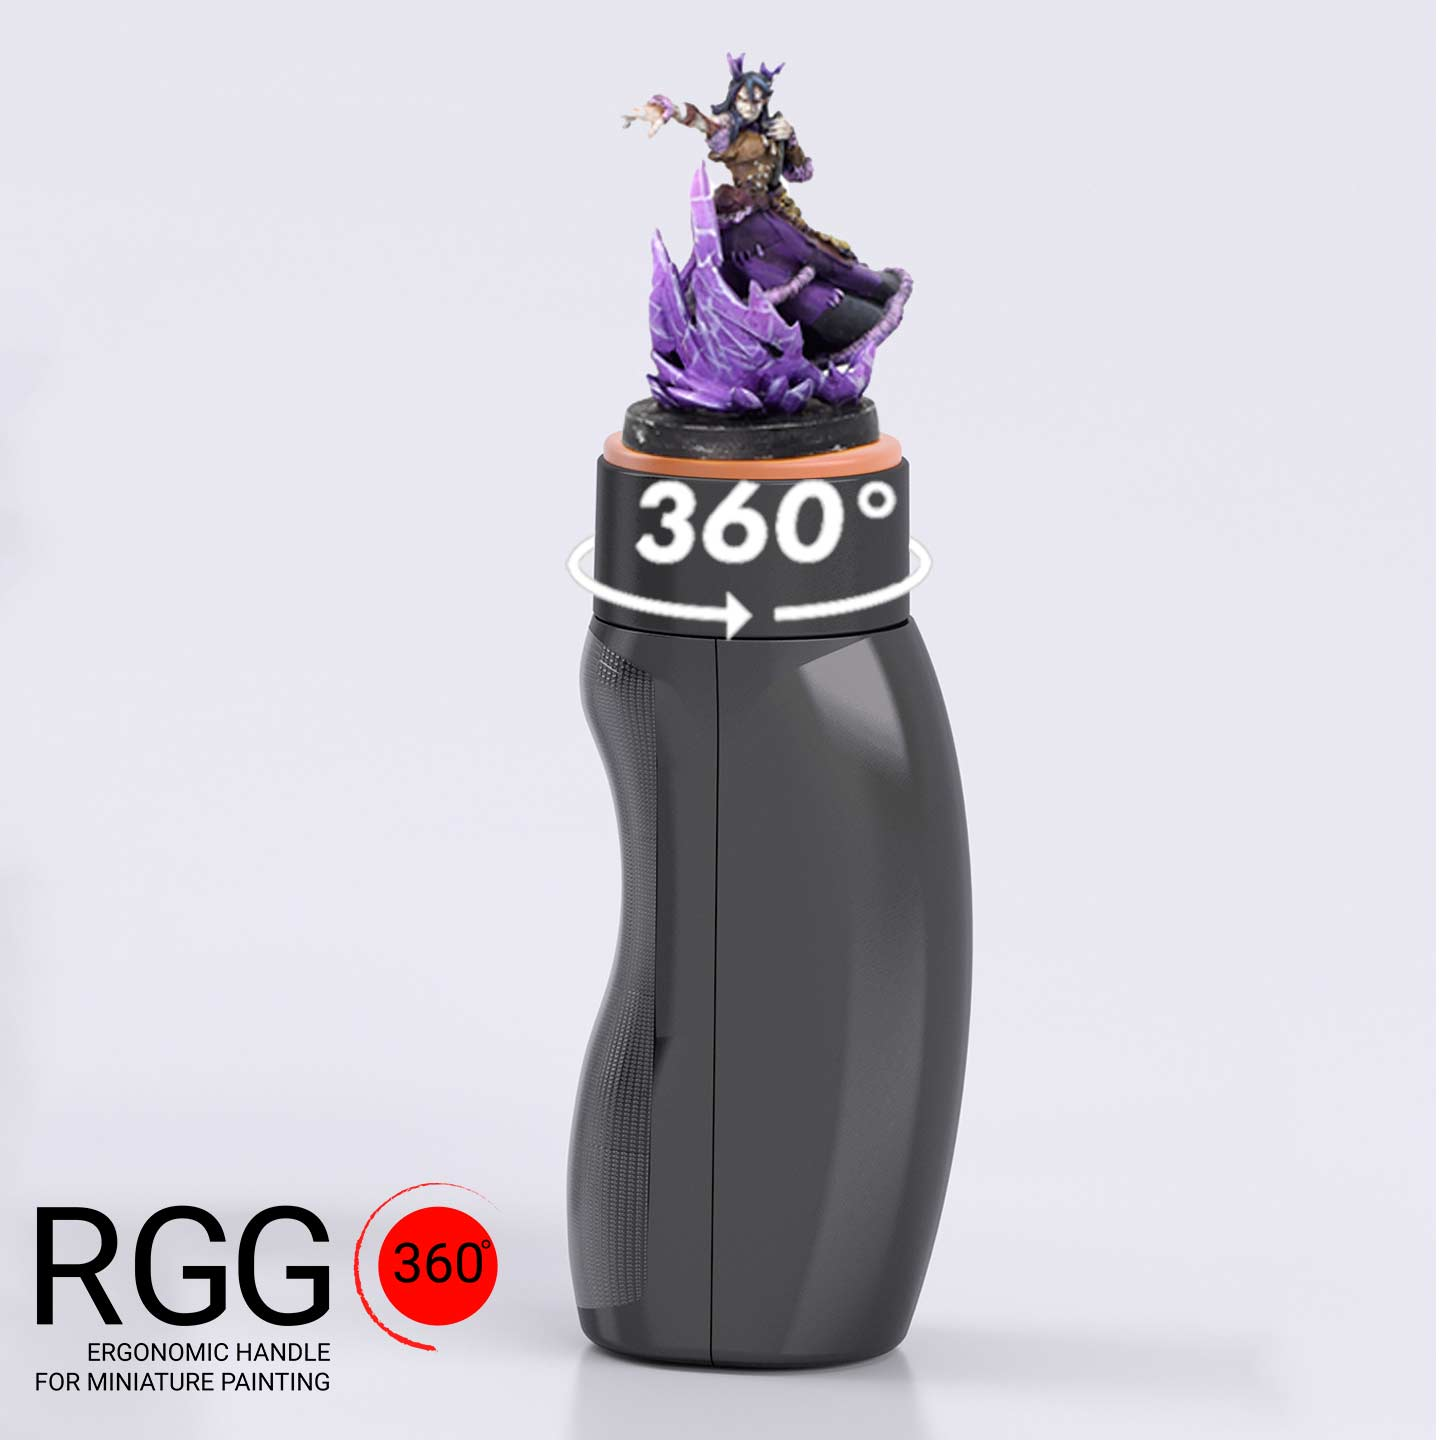 Rgg-360-holder-handle-miniature-redgrassgames-store